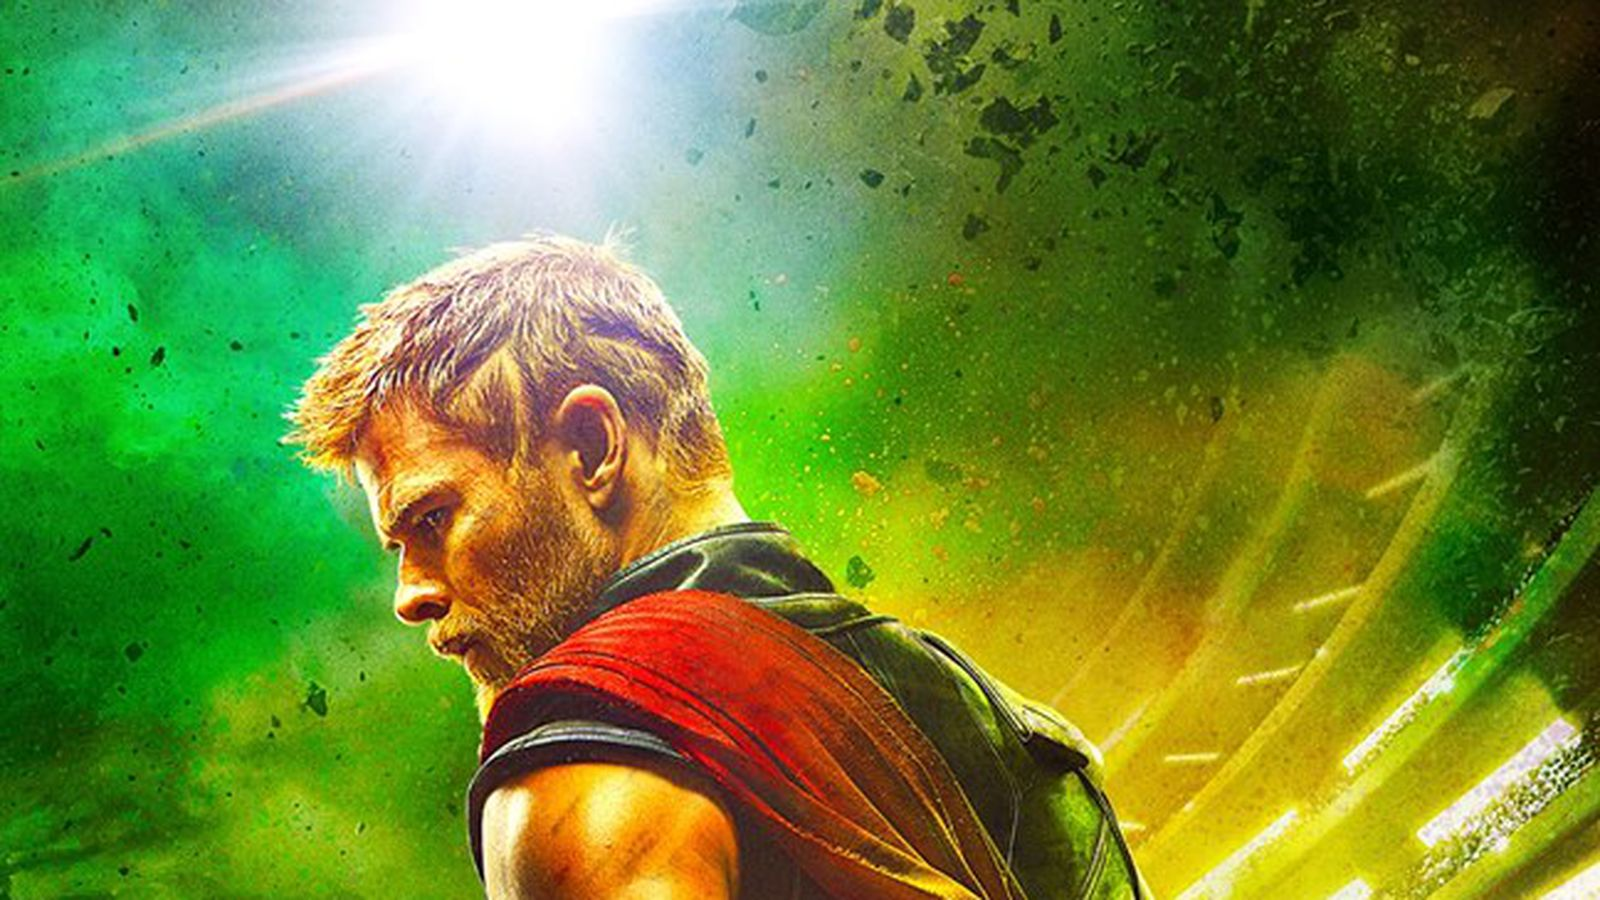 Thor: Ragnarok: Here's what's going on